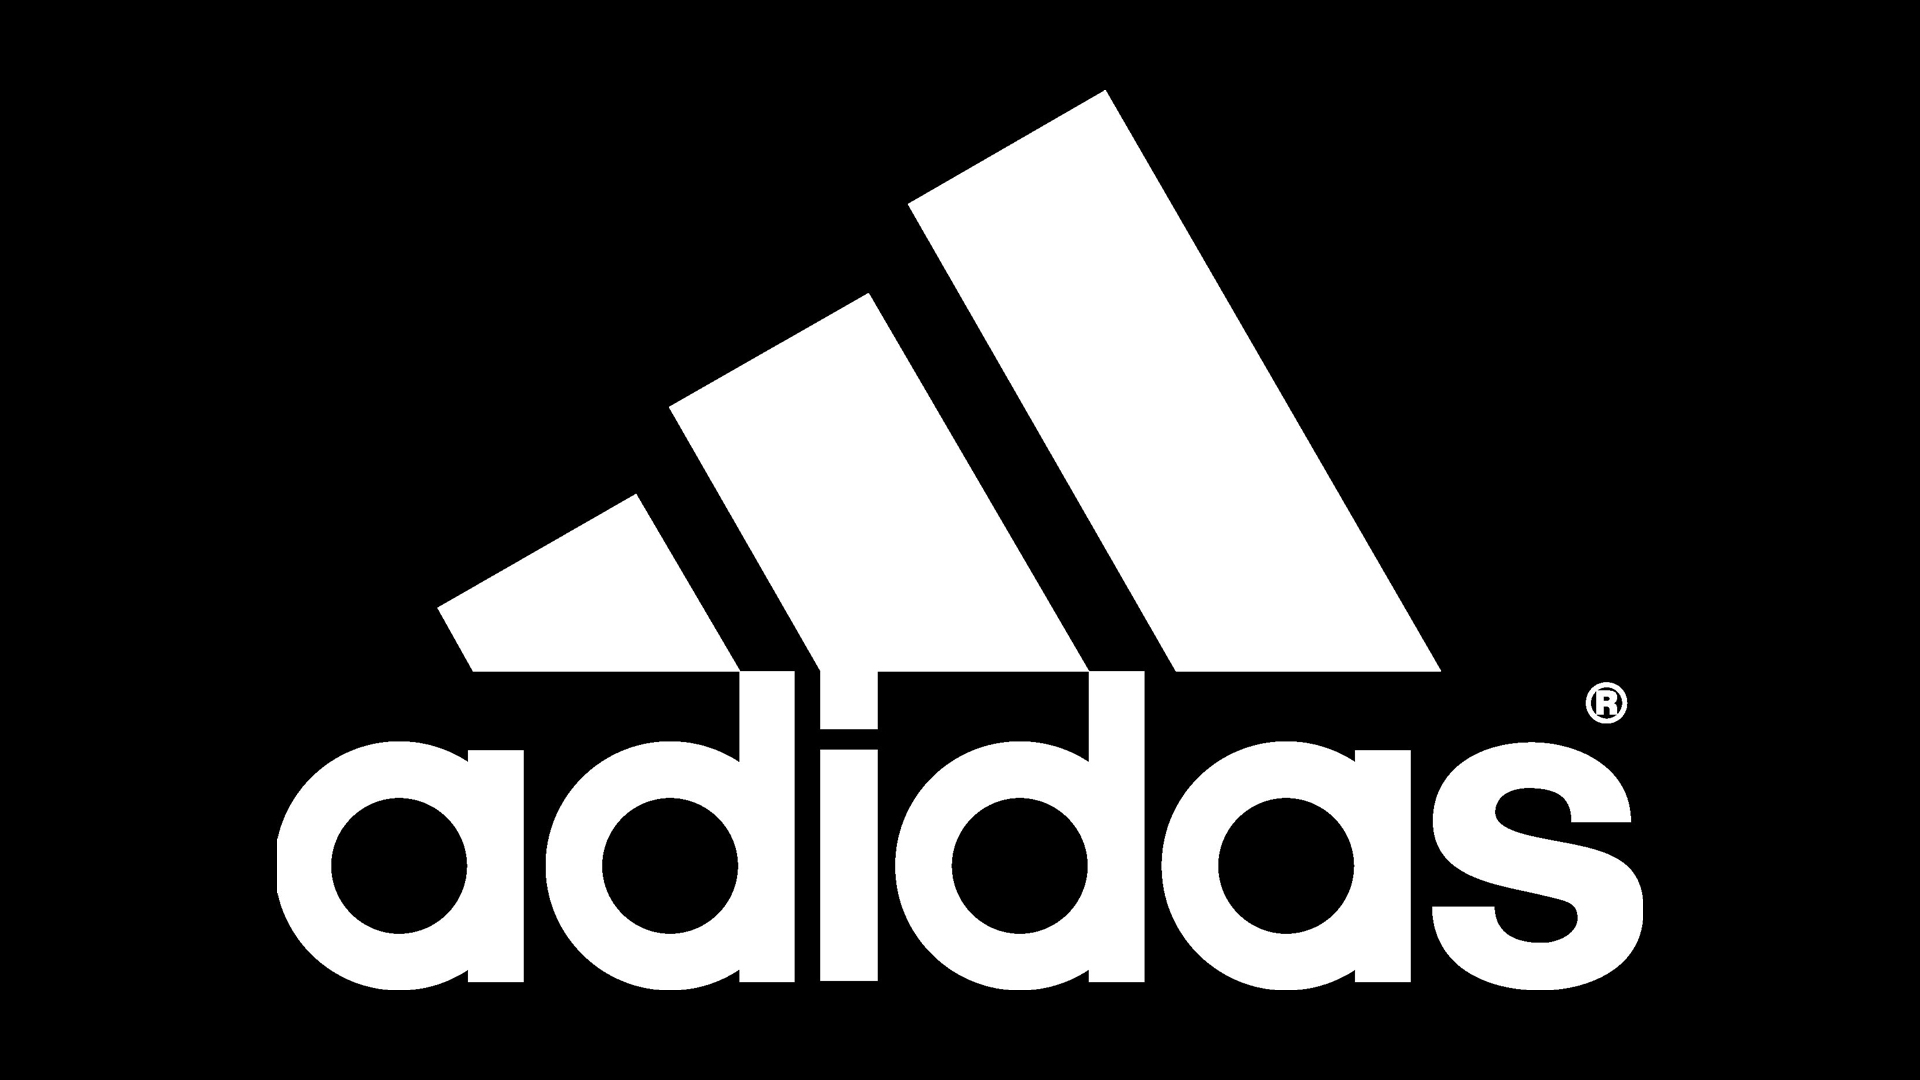 Широкоформатные обои логотип Adidas, Adidas ...: www.fullhdoboi.ru/photo/brands/logotip_adidas/31-0-6018